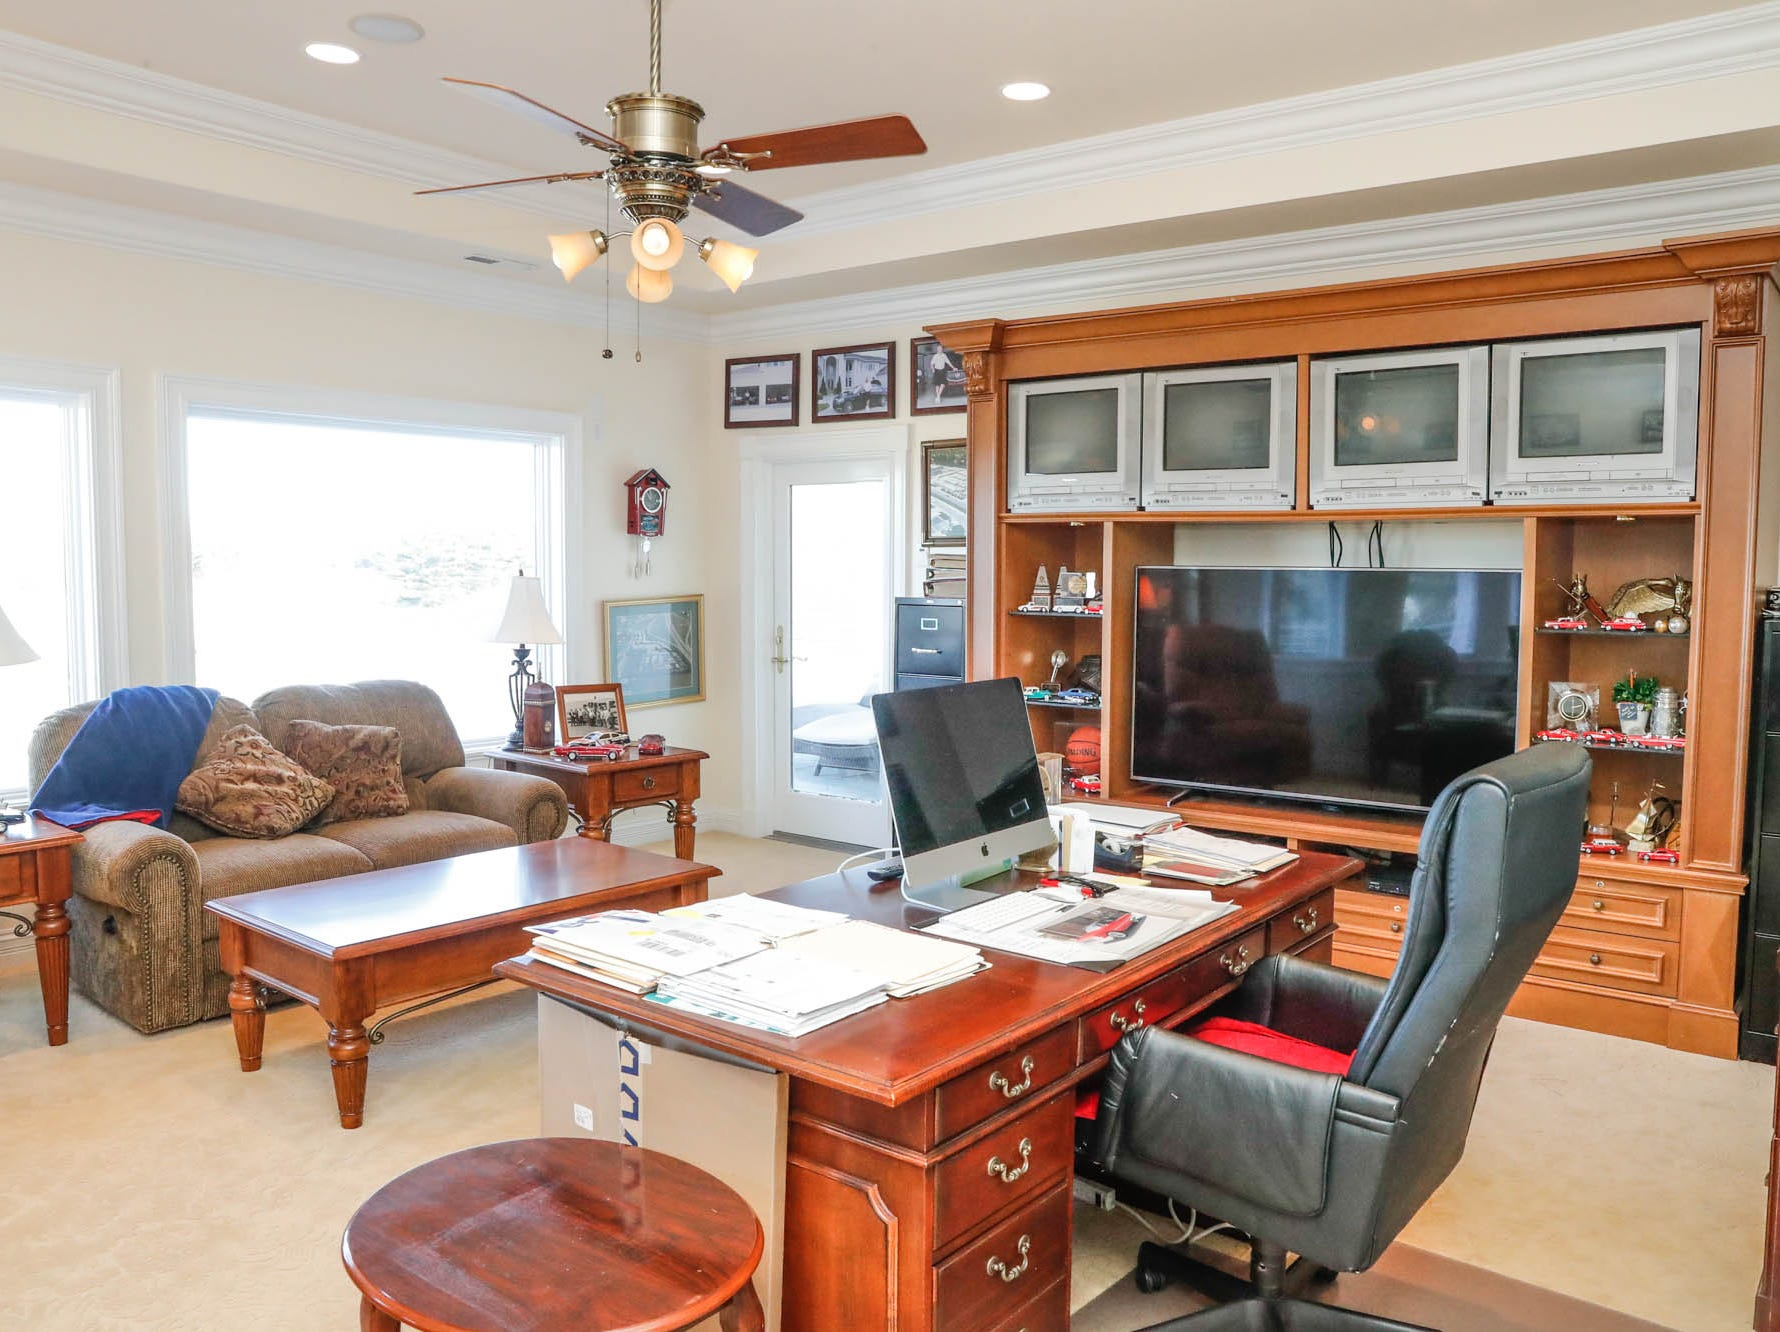 A second study/home office features a door to a large wrap around porch at a Greenwood home up for sale at 1216 Stone Ridge Court, Greenwood, Ind. on Wednesday, Jan. 30, 2019. The home features 8,234 square feet, four bedrooms, two master suites, a 10 car garage, and an exercise room.